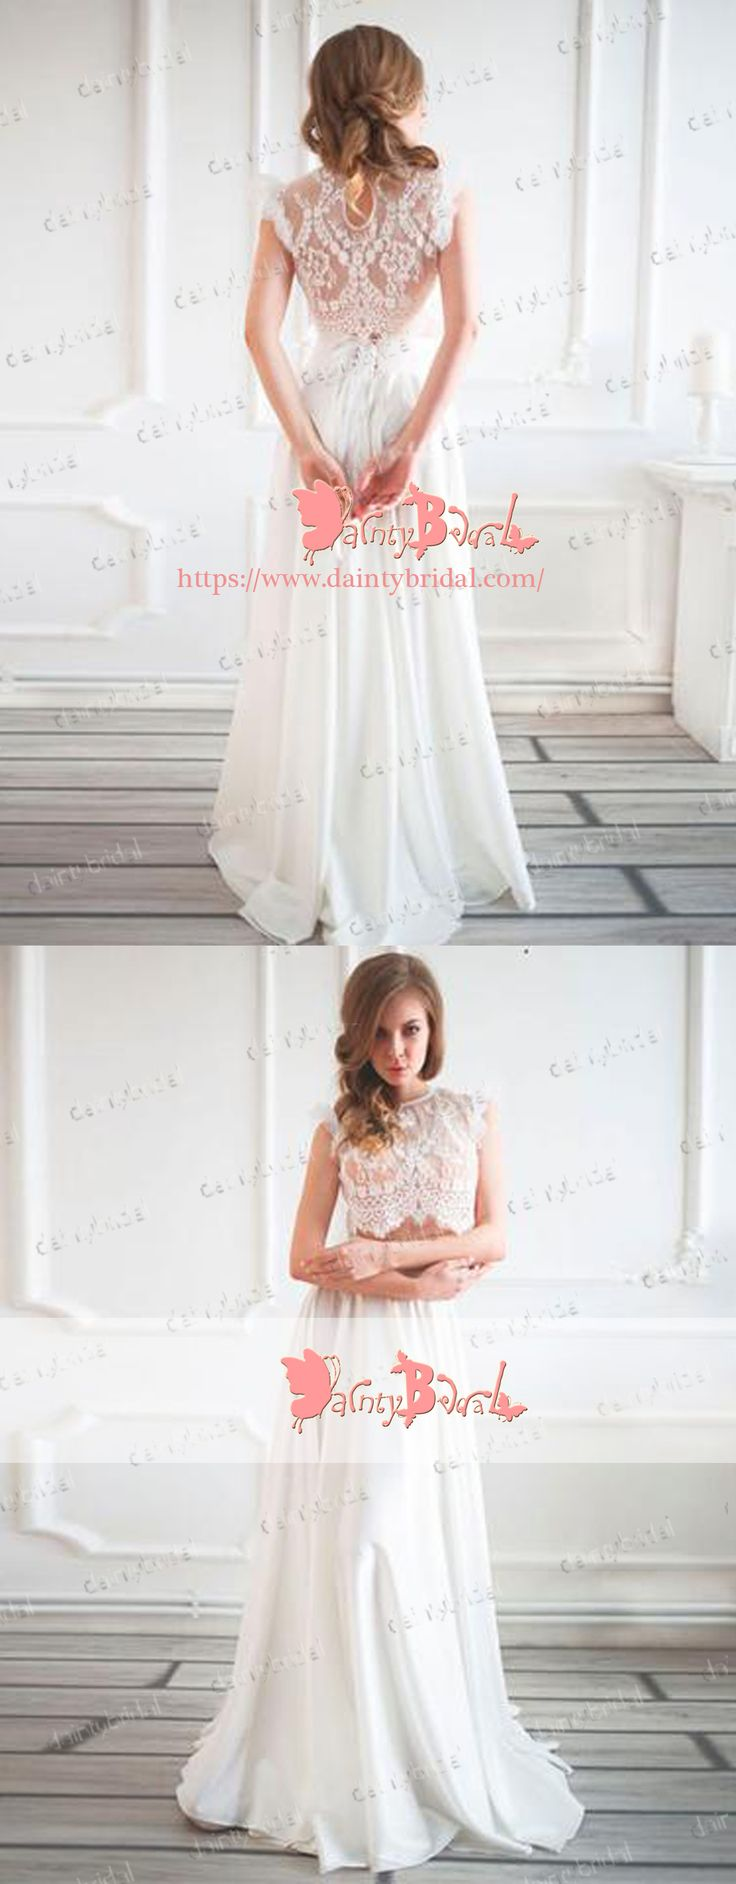 ELEGANT TWO PIECES IVORY LACE CHIFFON A-LINE CAP SLEEVE LONG A-LINE WEDDING PARTY PROM DRESSES. DB1047